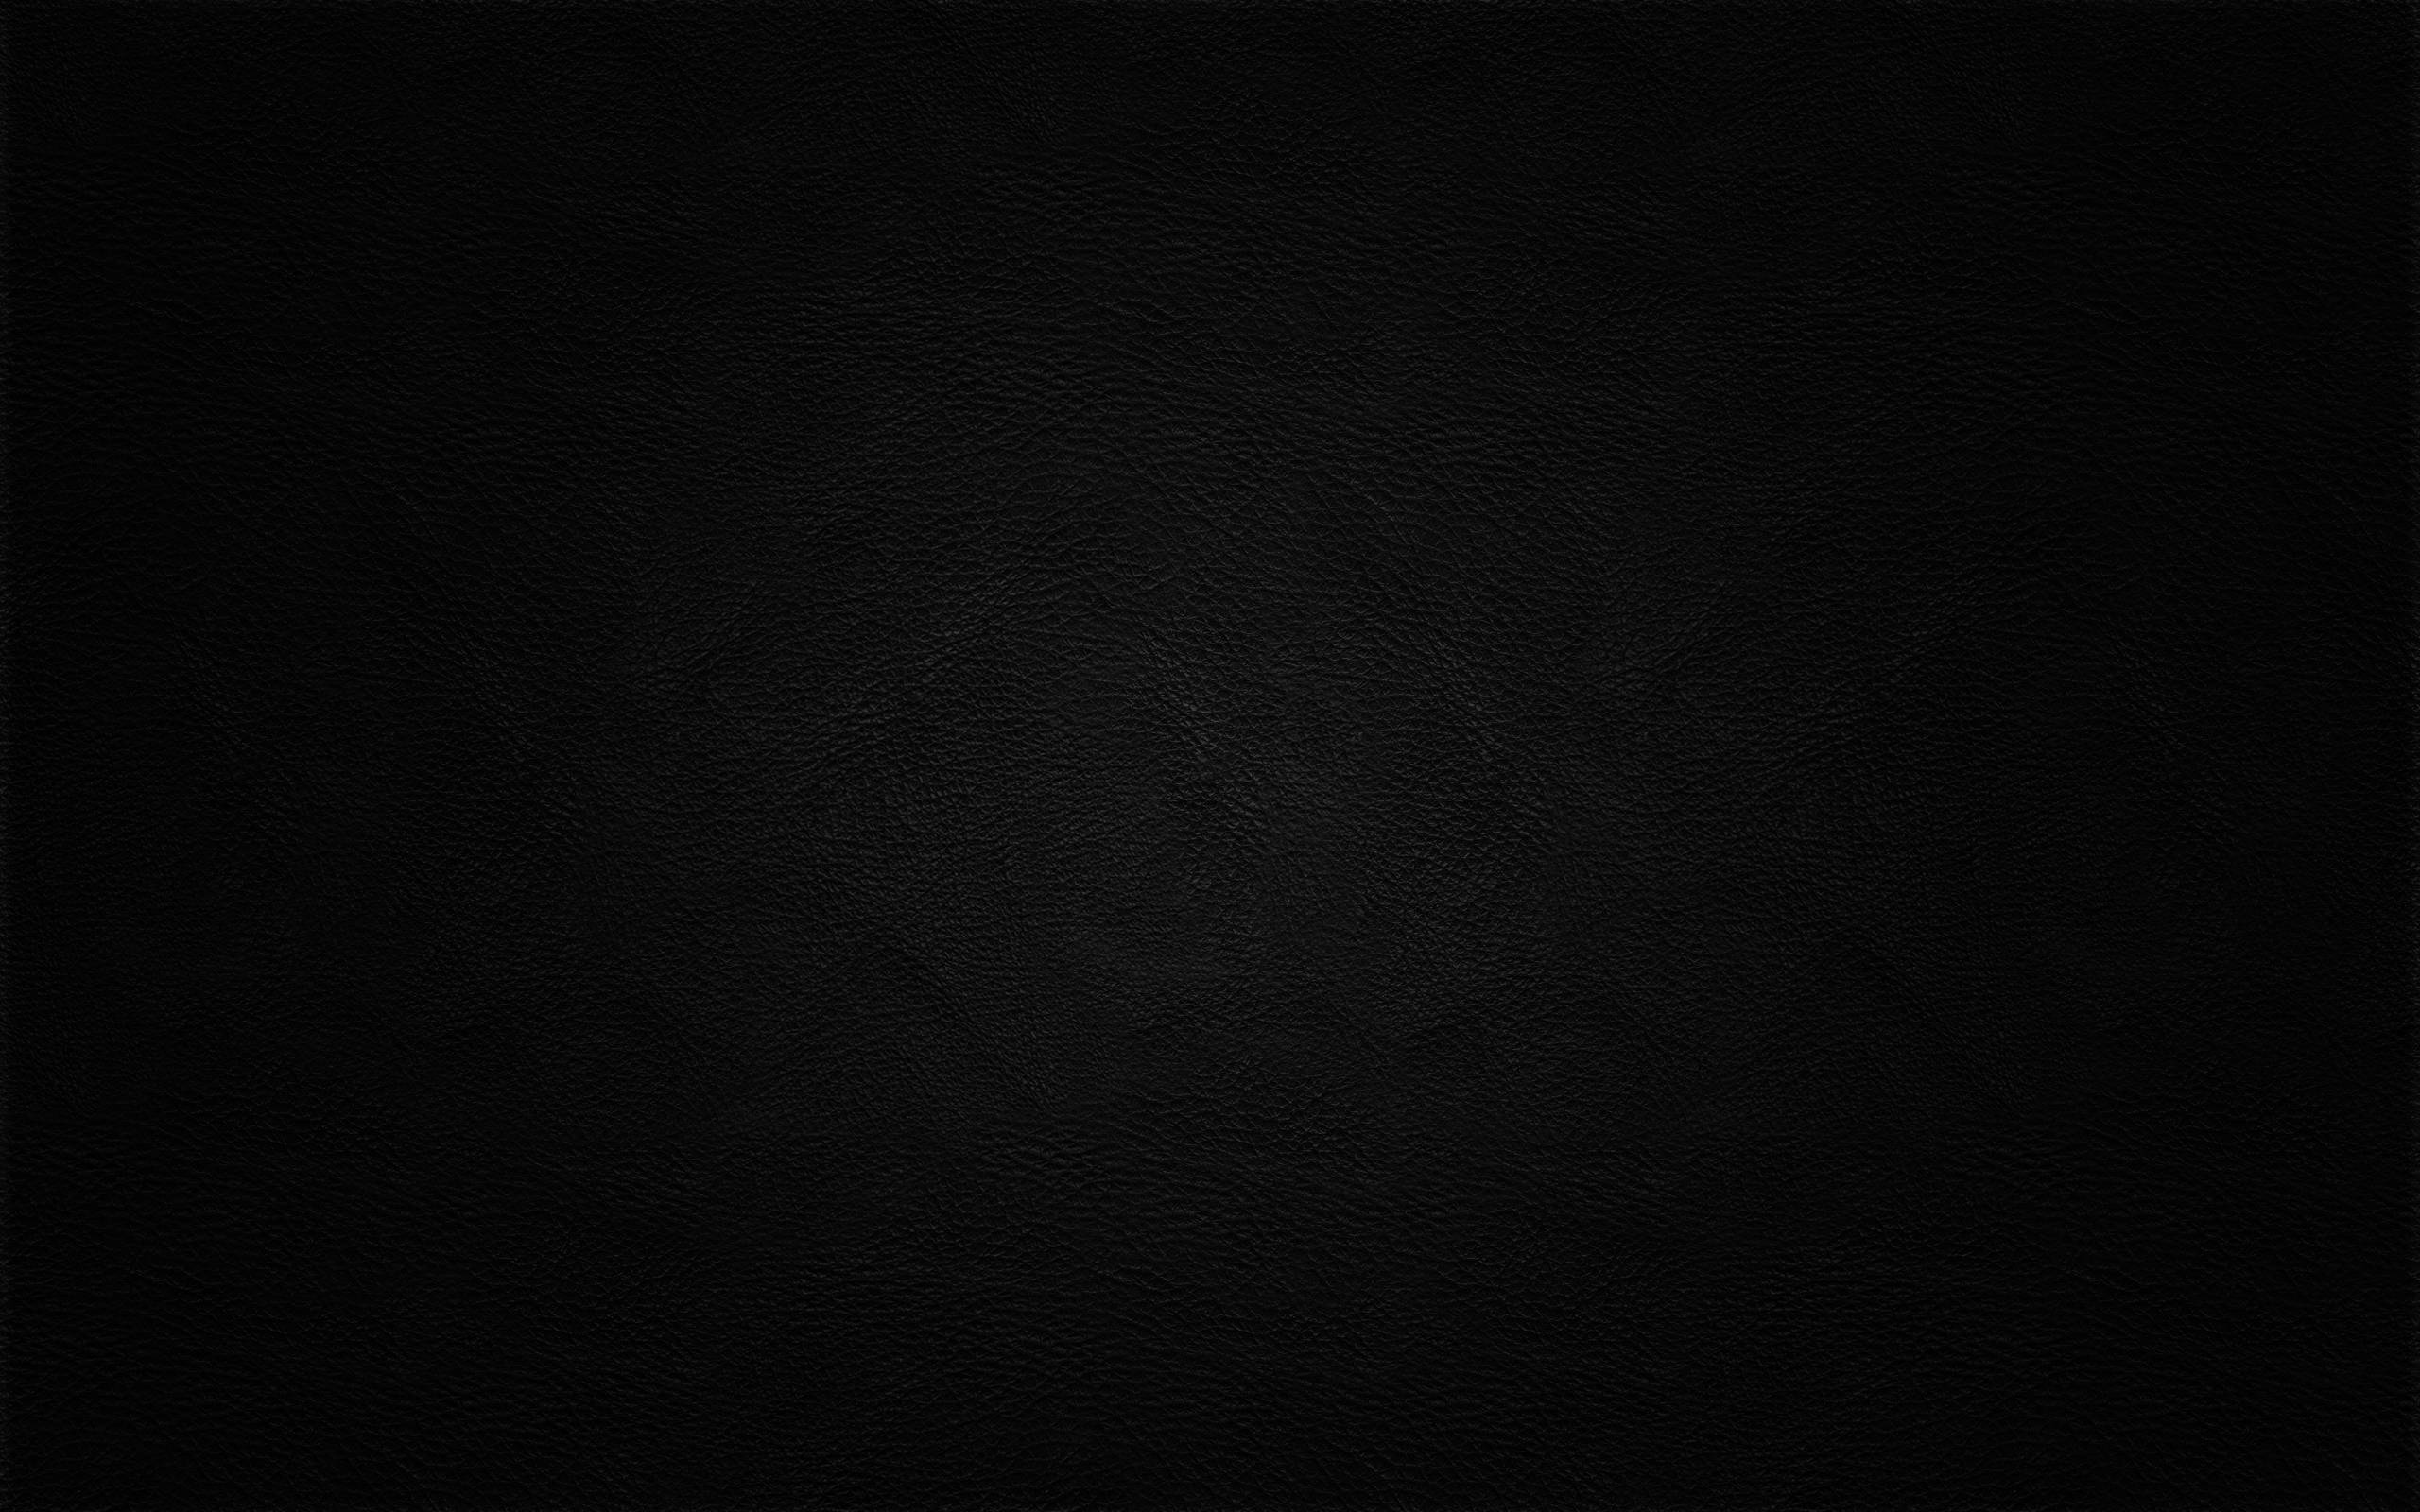 Full black wallpapers wallpaper cave for Black wallpaper full hd